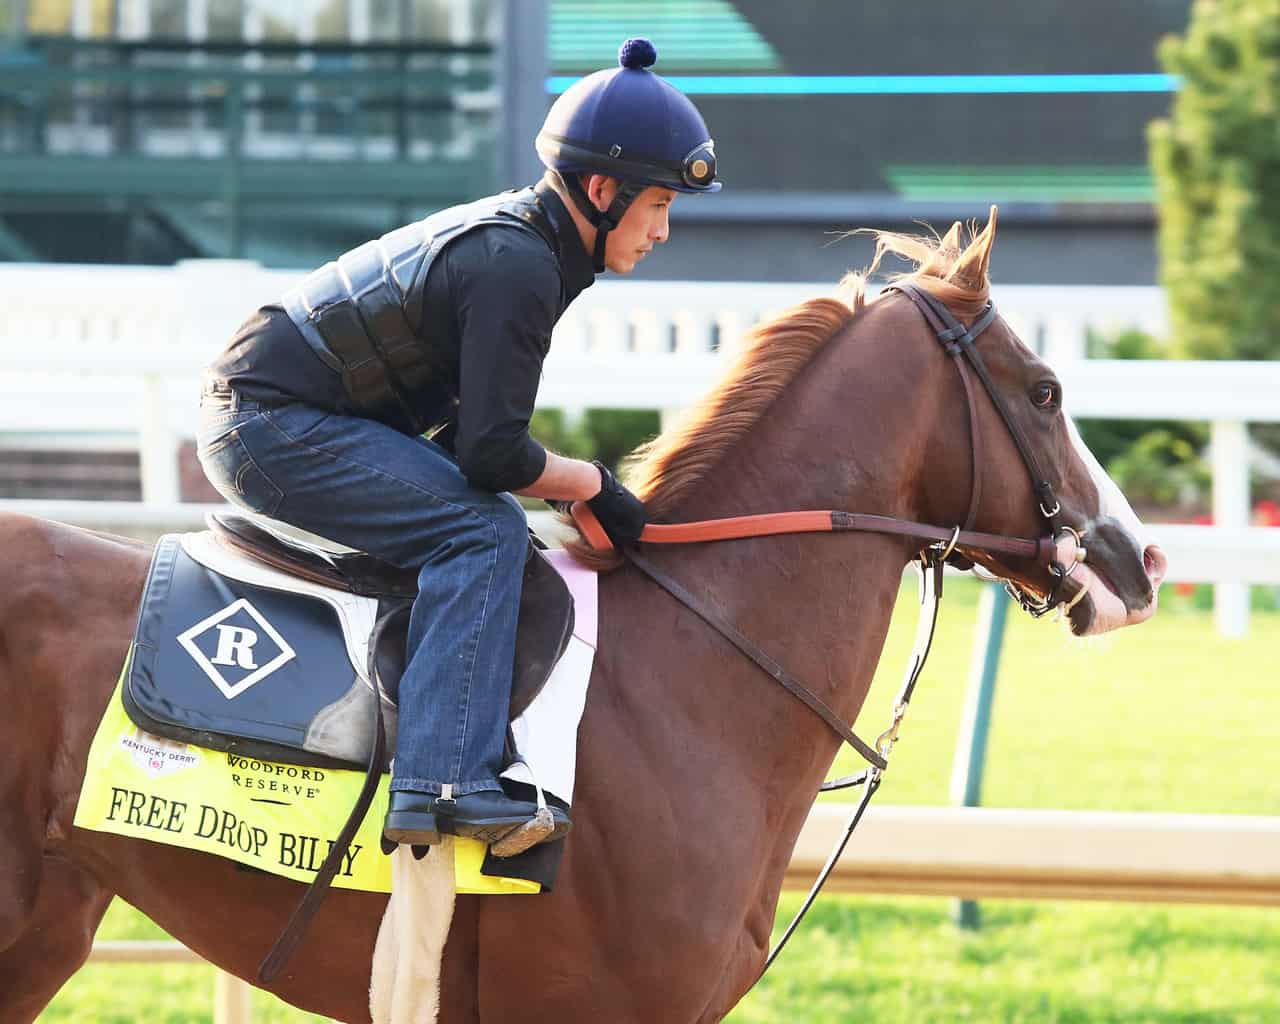 Kentucky Derby: Justify draws 7th from the rail